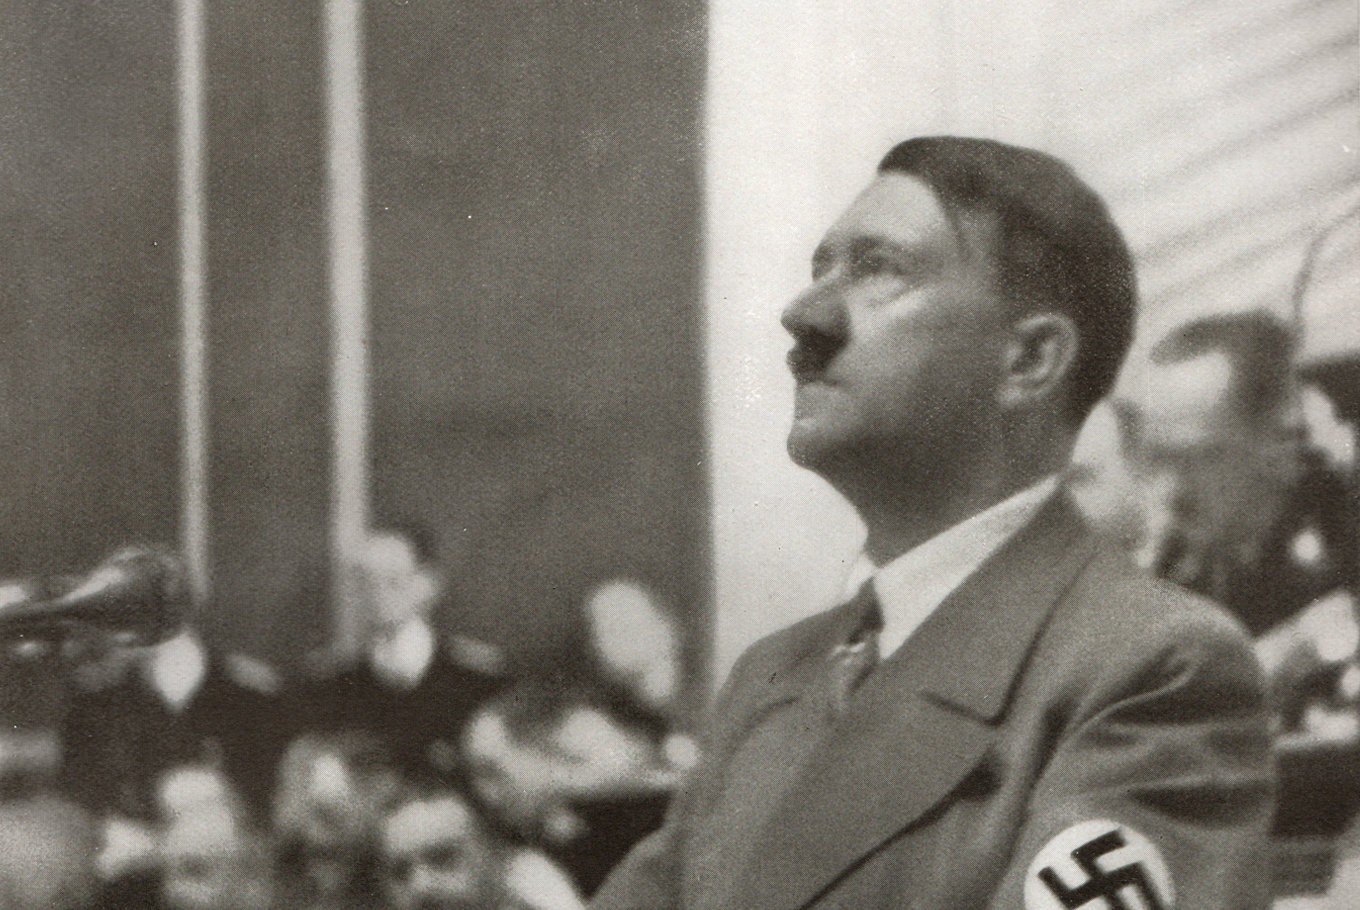 Austrian police arrest man described as 'Hitler's double'